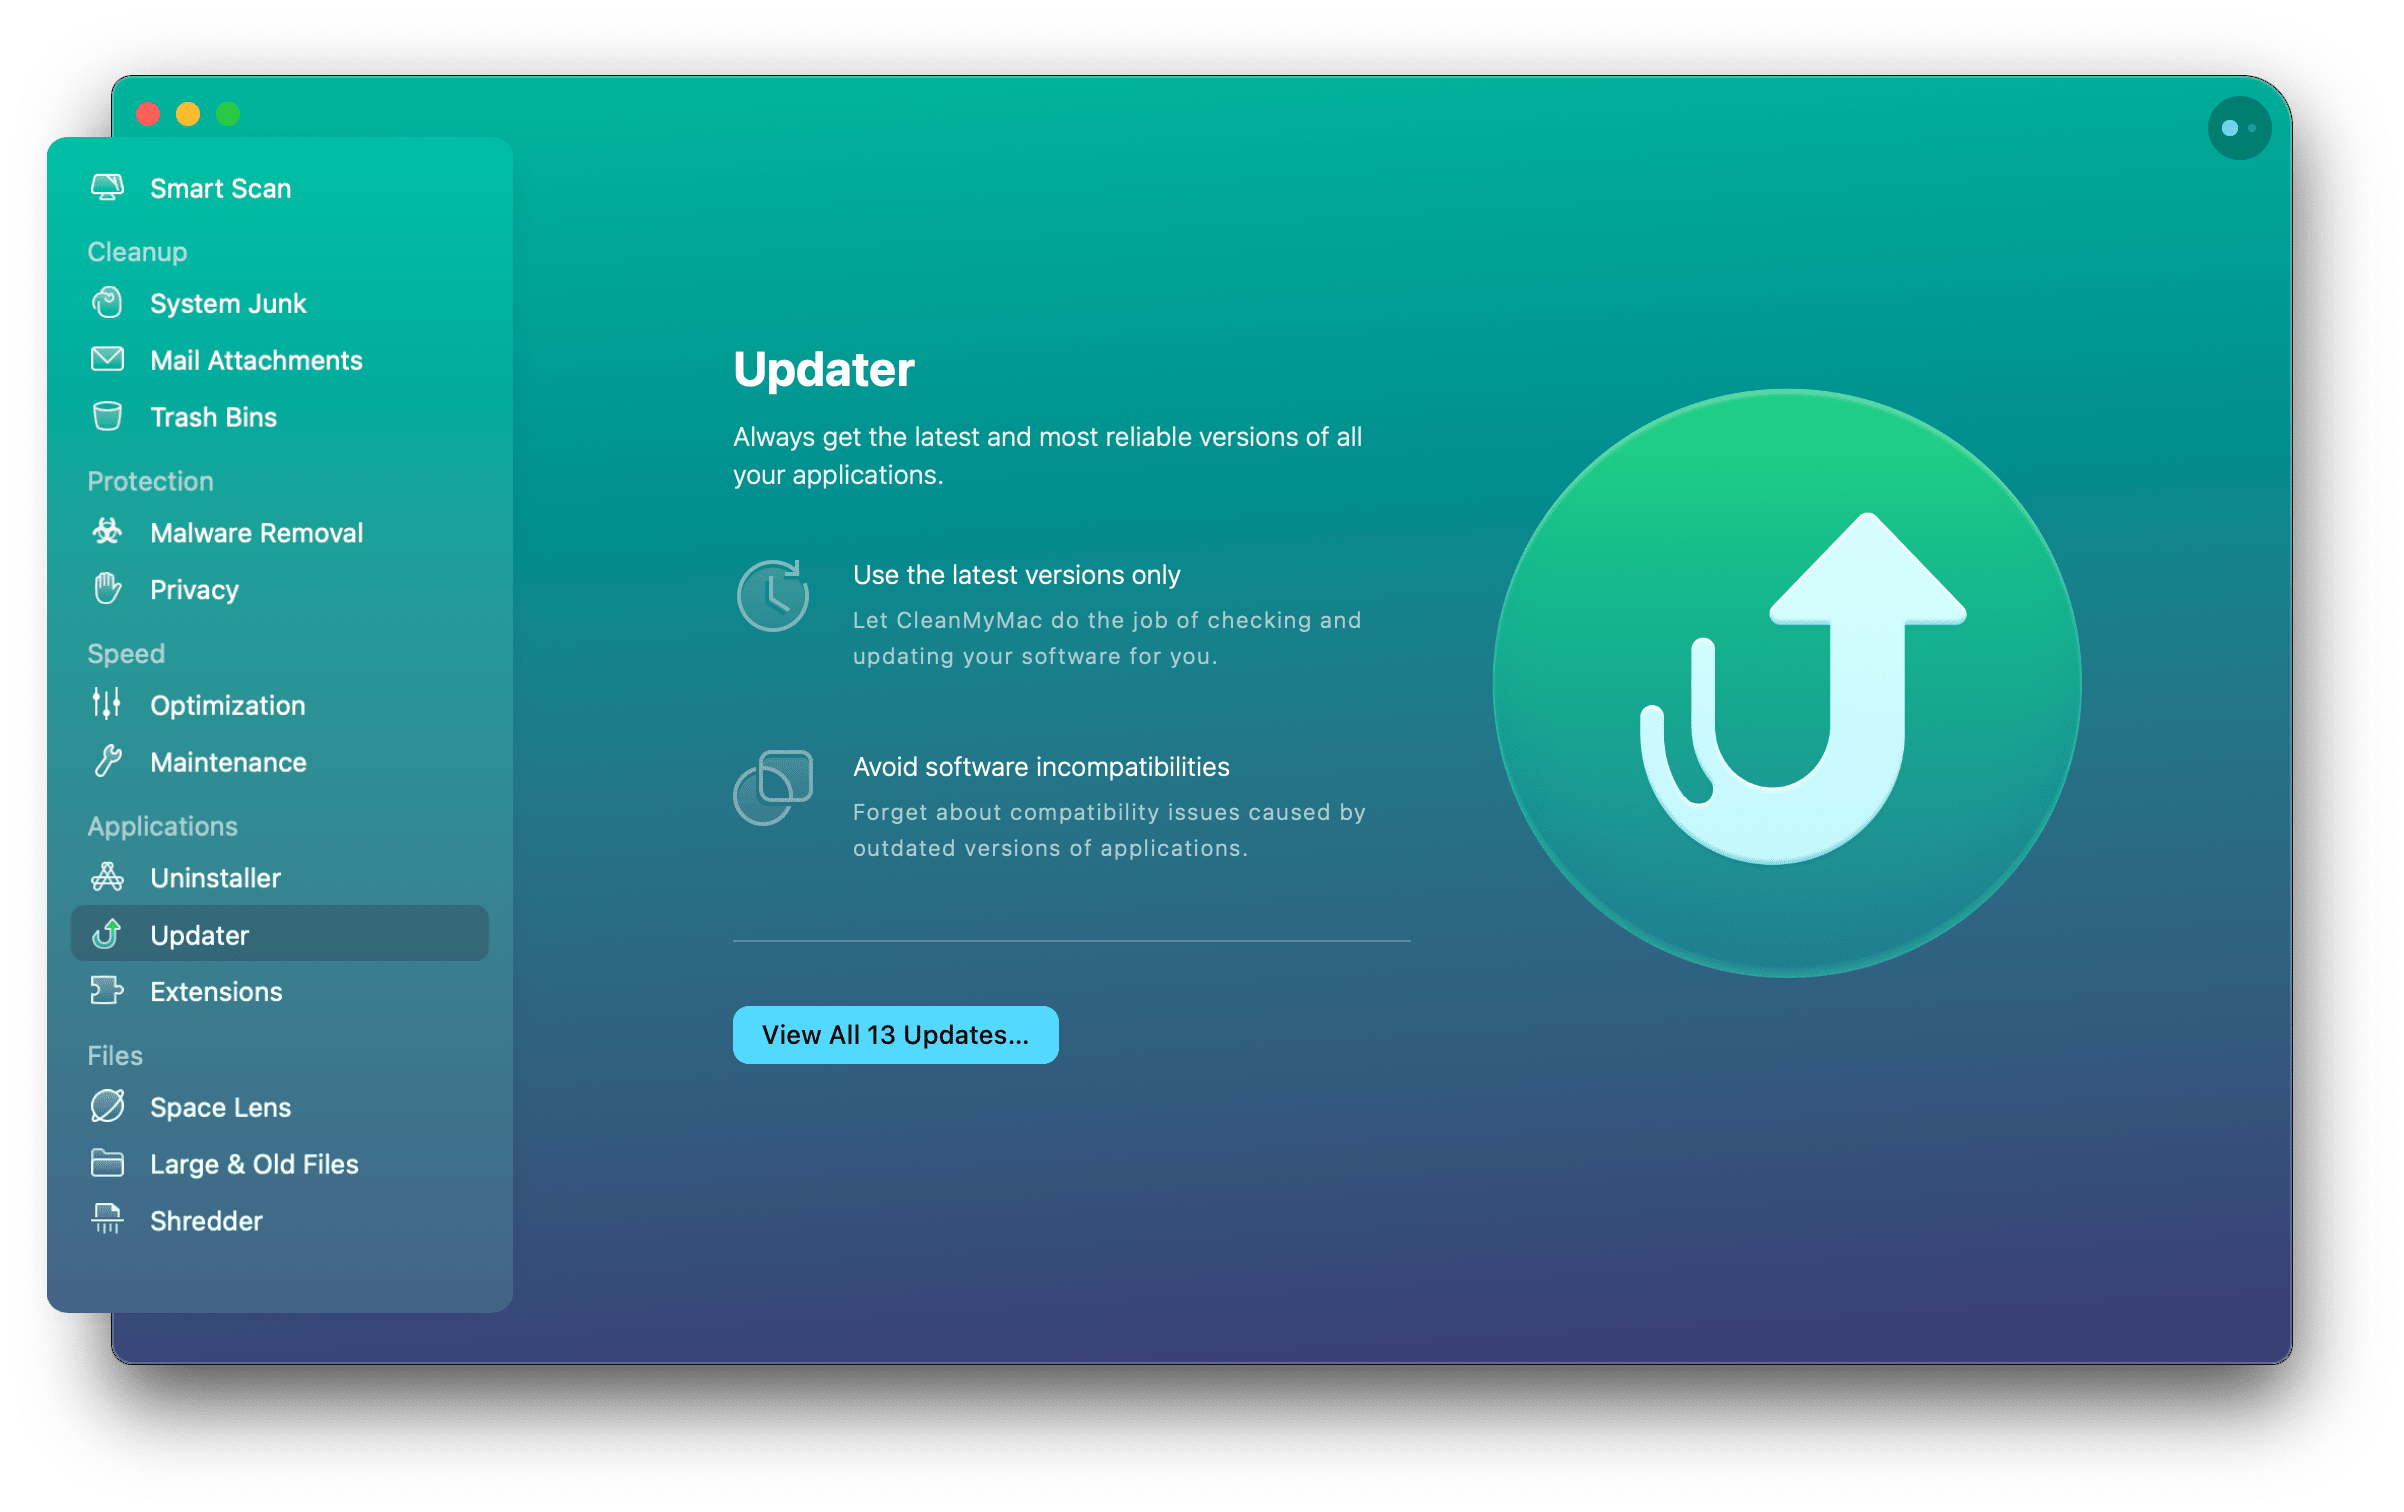 Mark apps you want to update